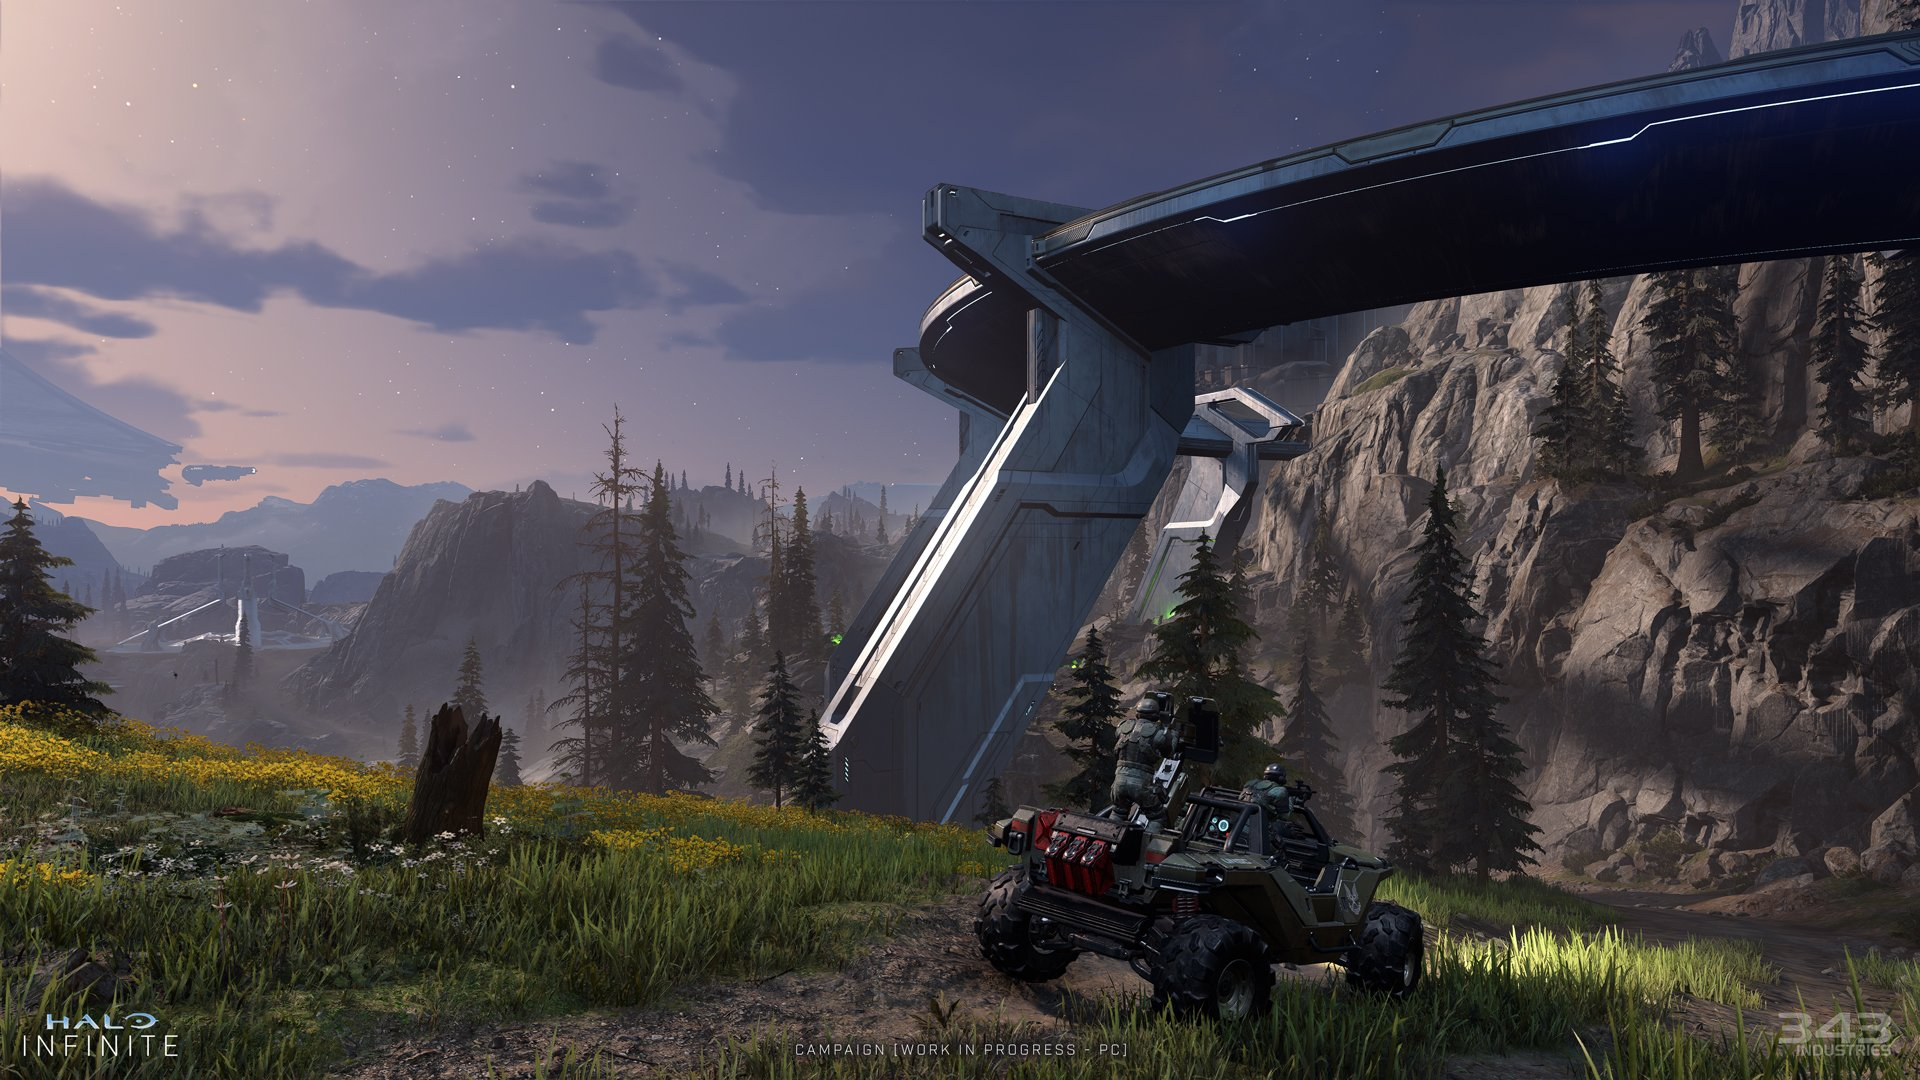 halo infinite screenshot